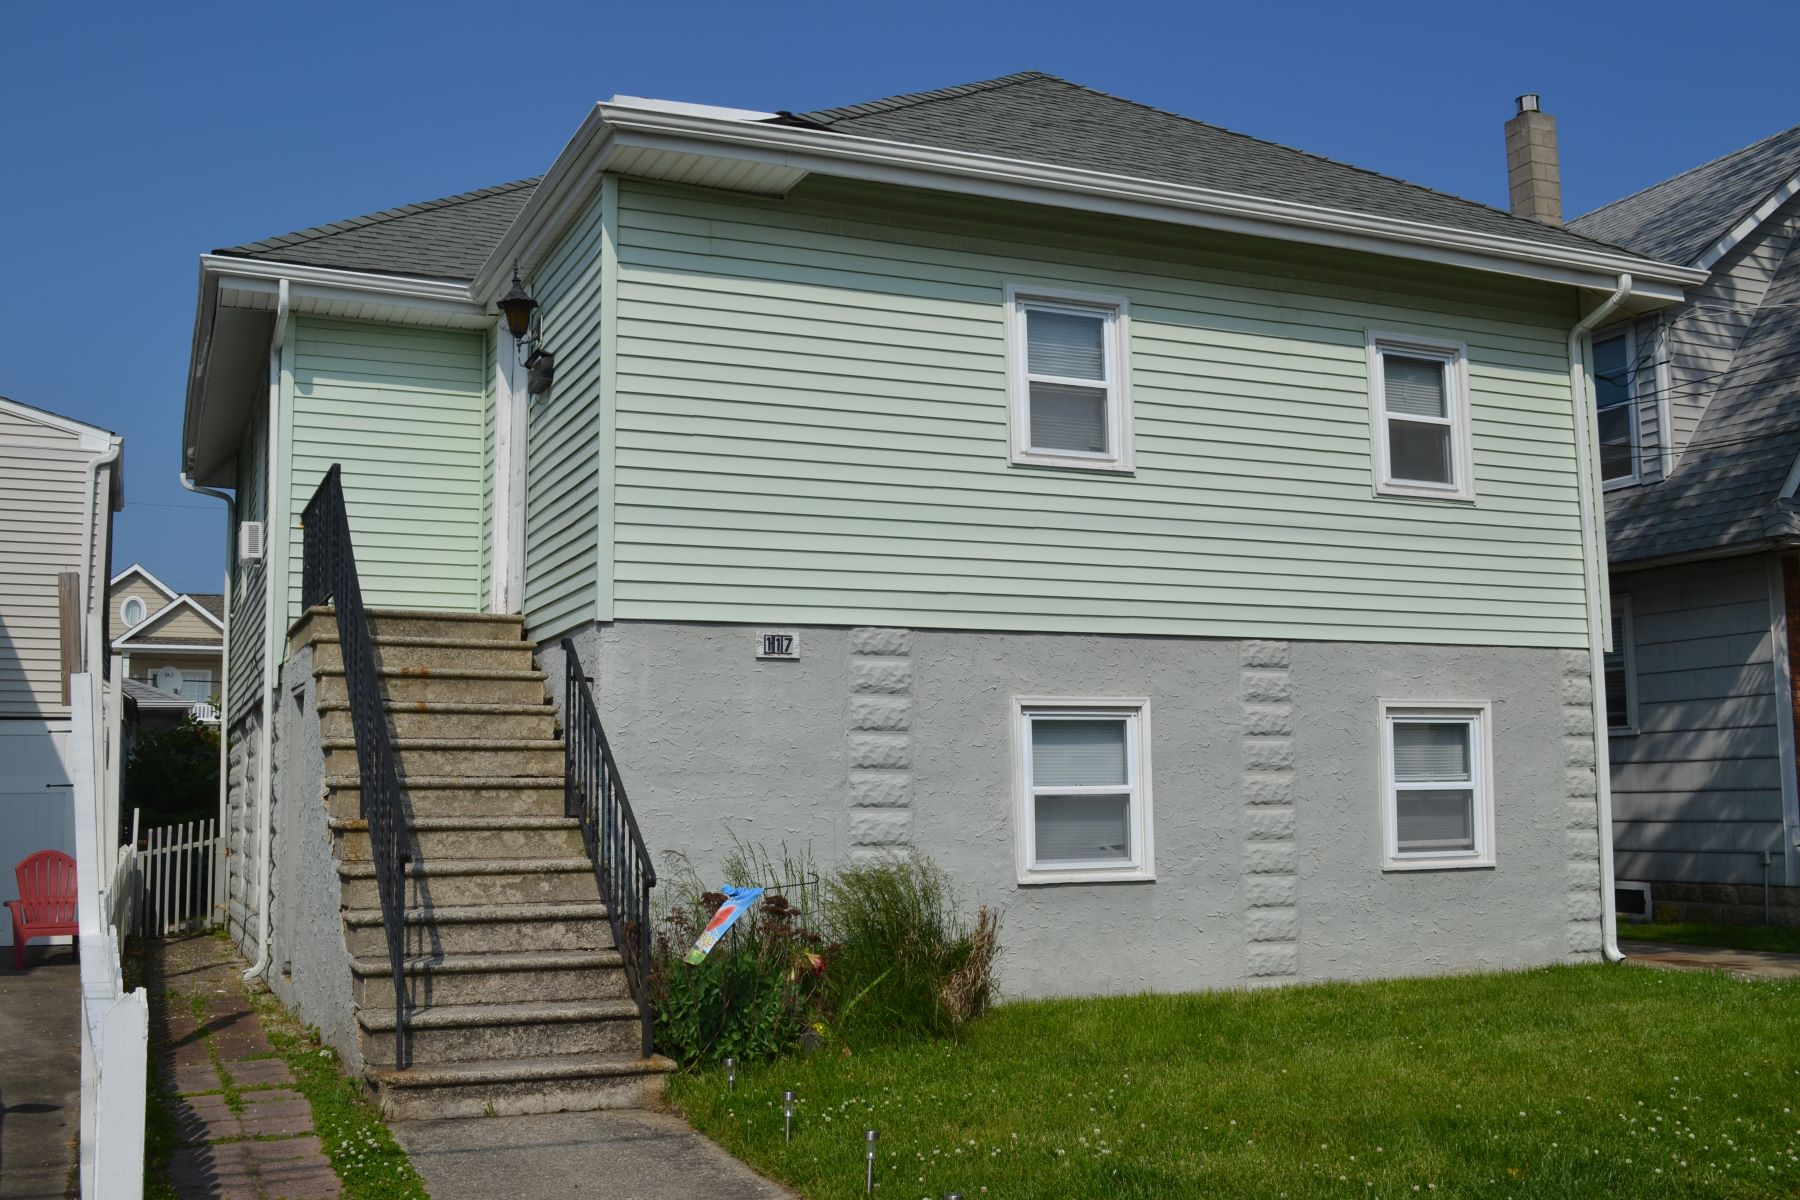 Duplex Homes for Rent at 117 N Newark (Lower) 117 N Newark Ave Lower, Ventnor, New Jersey 08406 United States